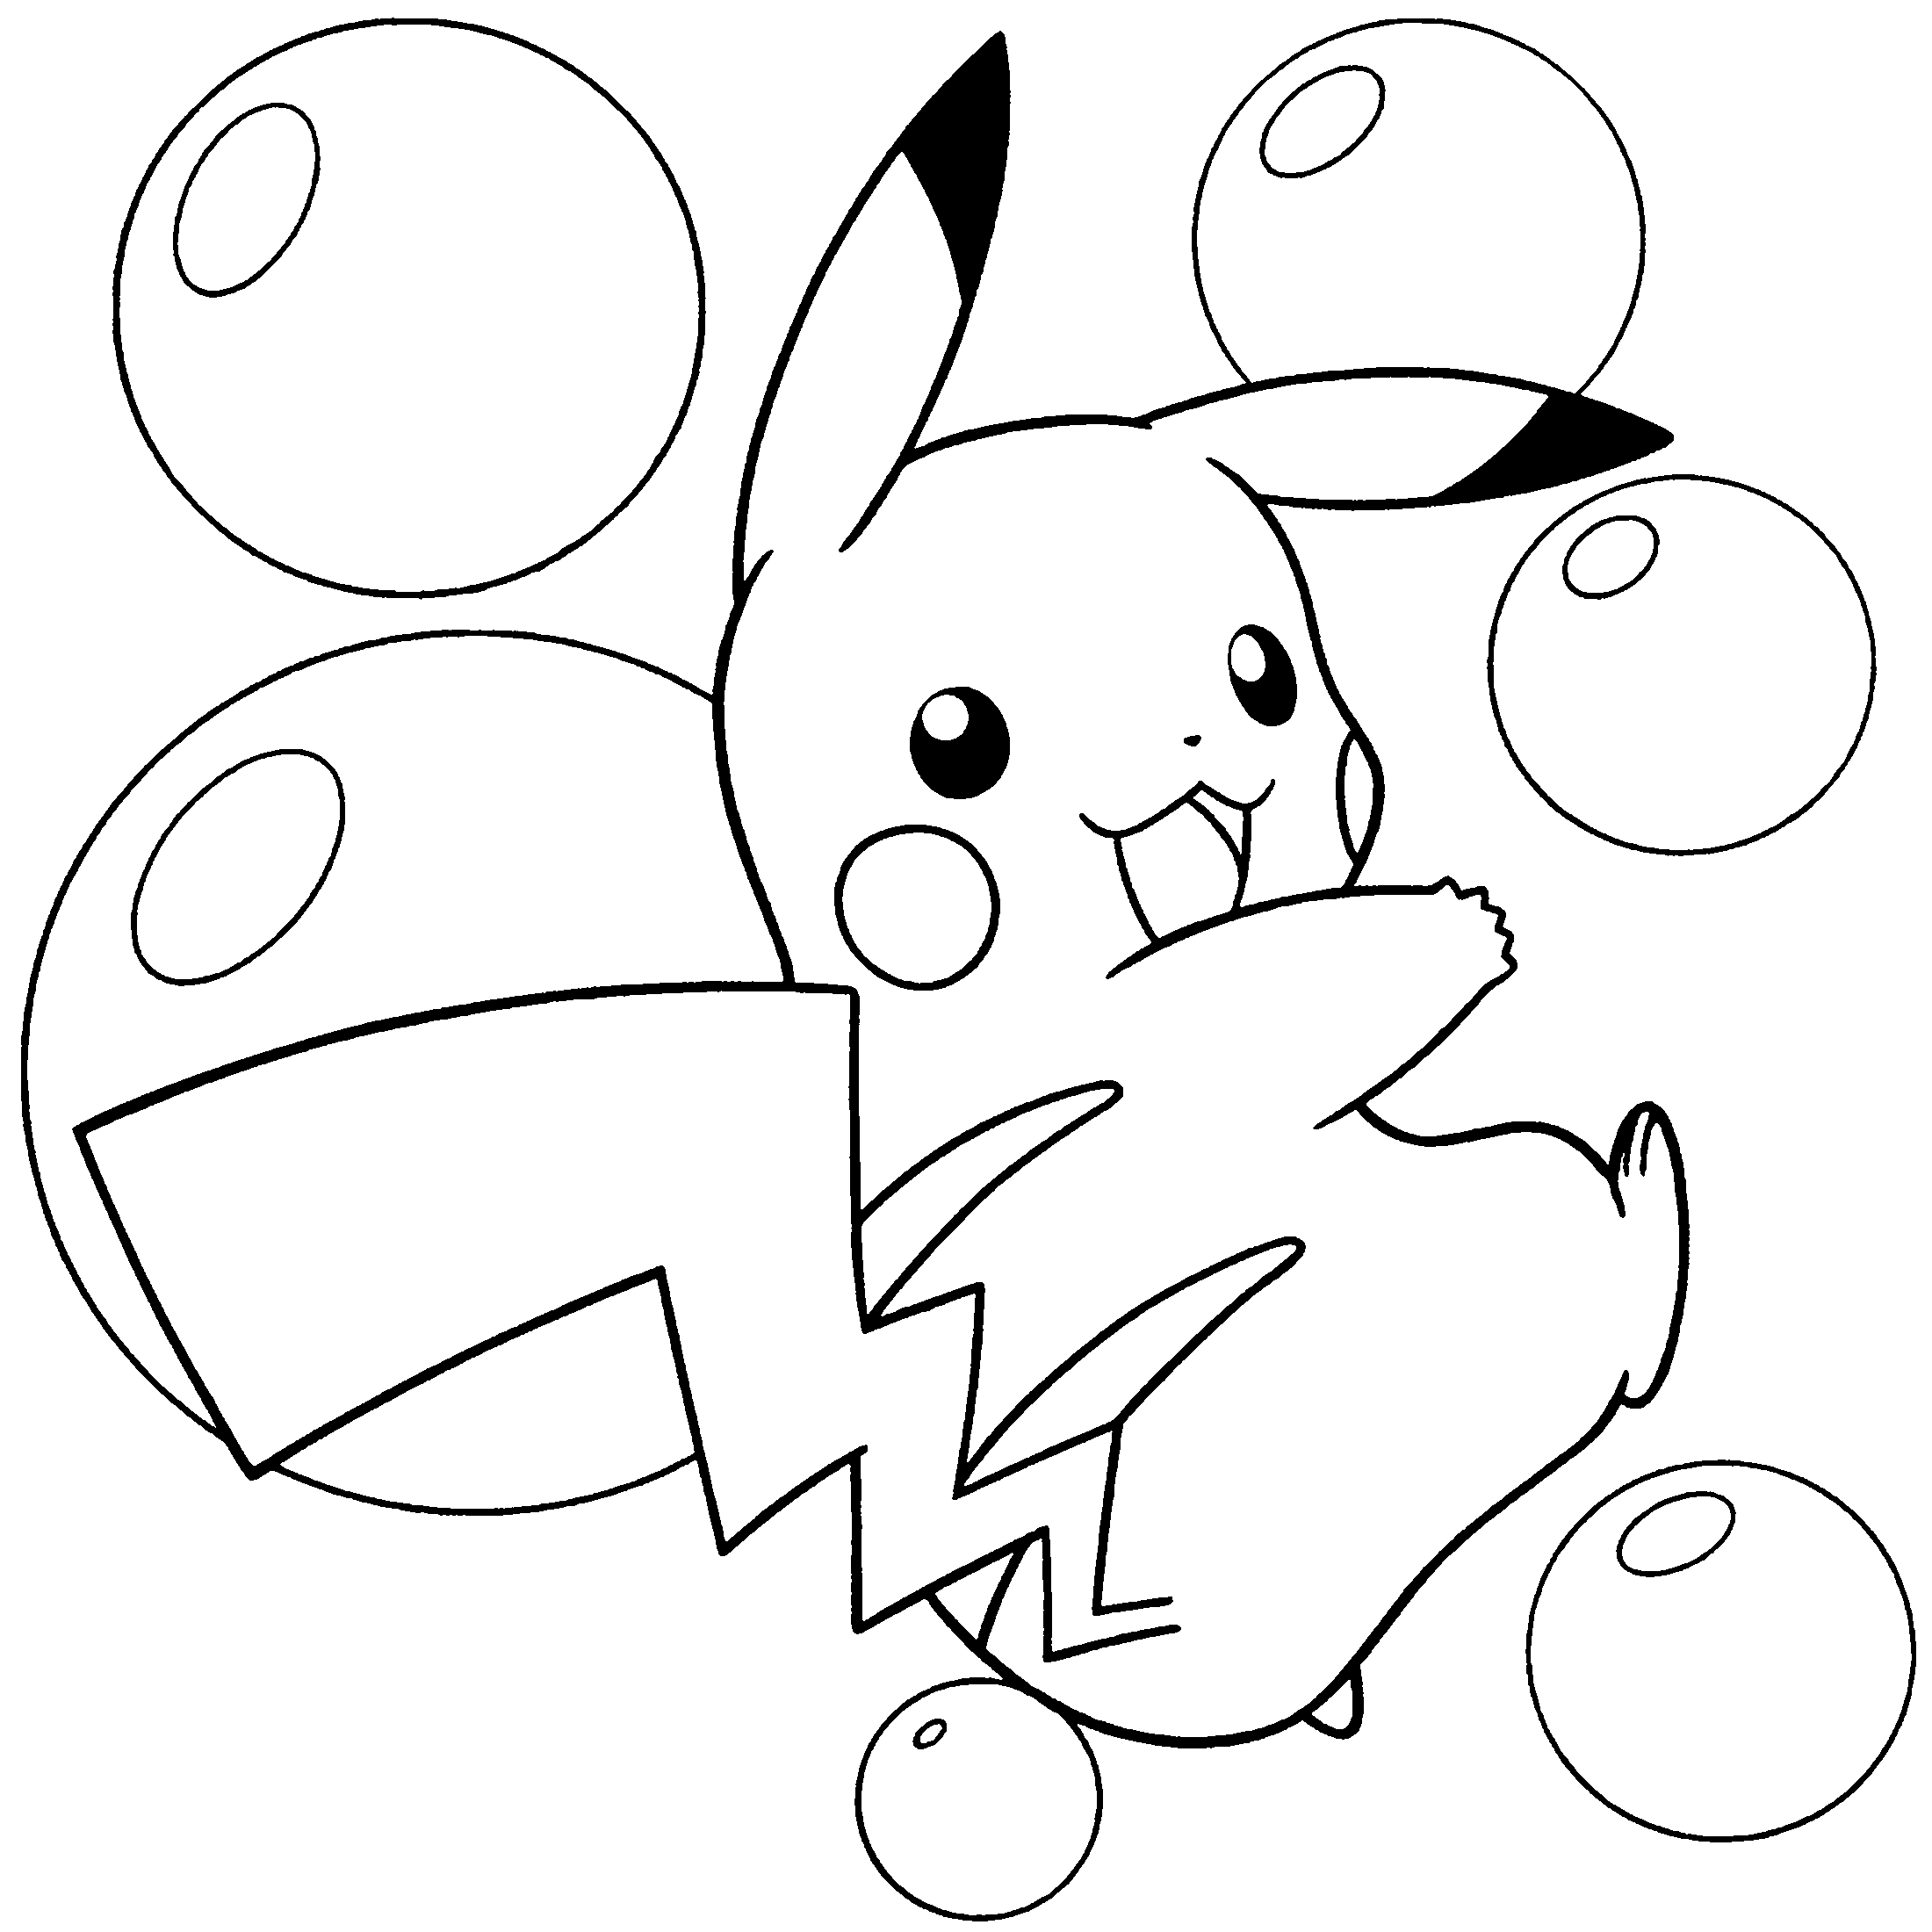 Pokemon coloring pages of mega lucario - Pokemon Coloring Pages Mega Lucario Pokemon Coloring Pages Pokemon